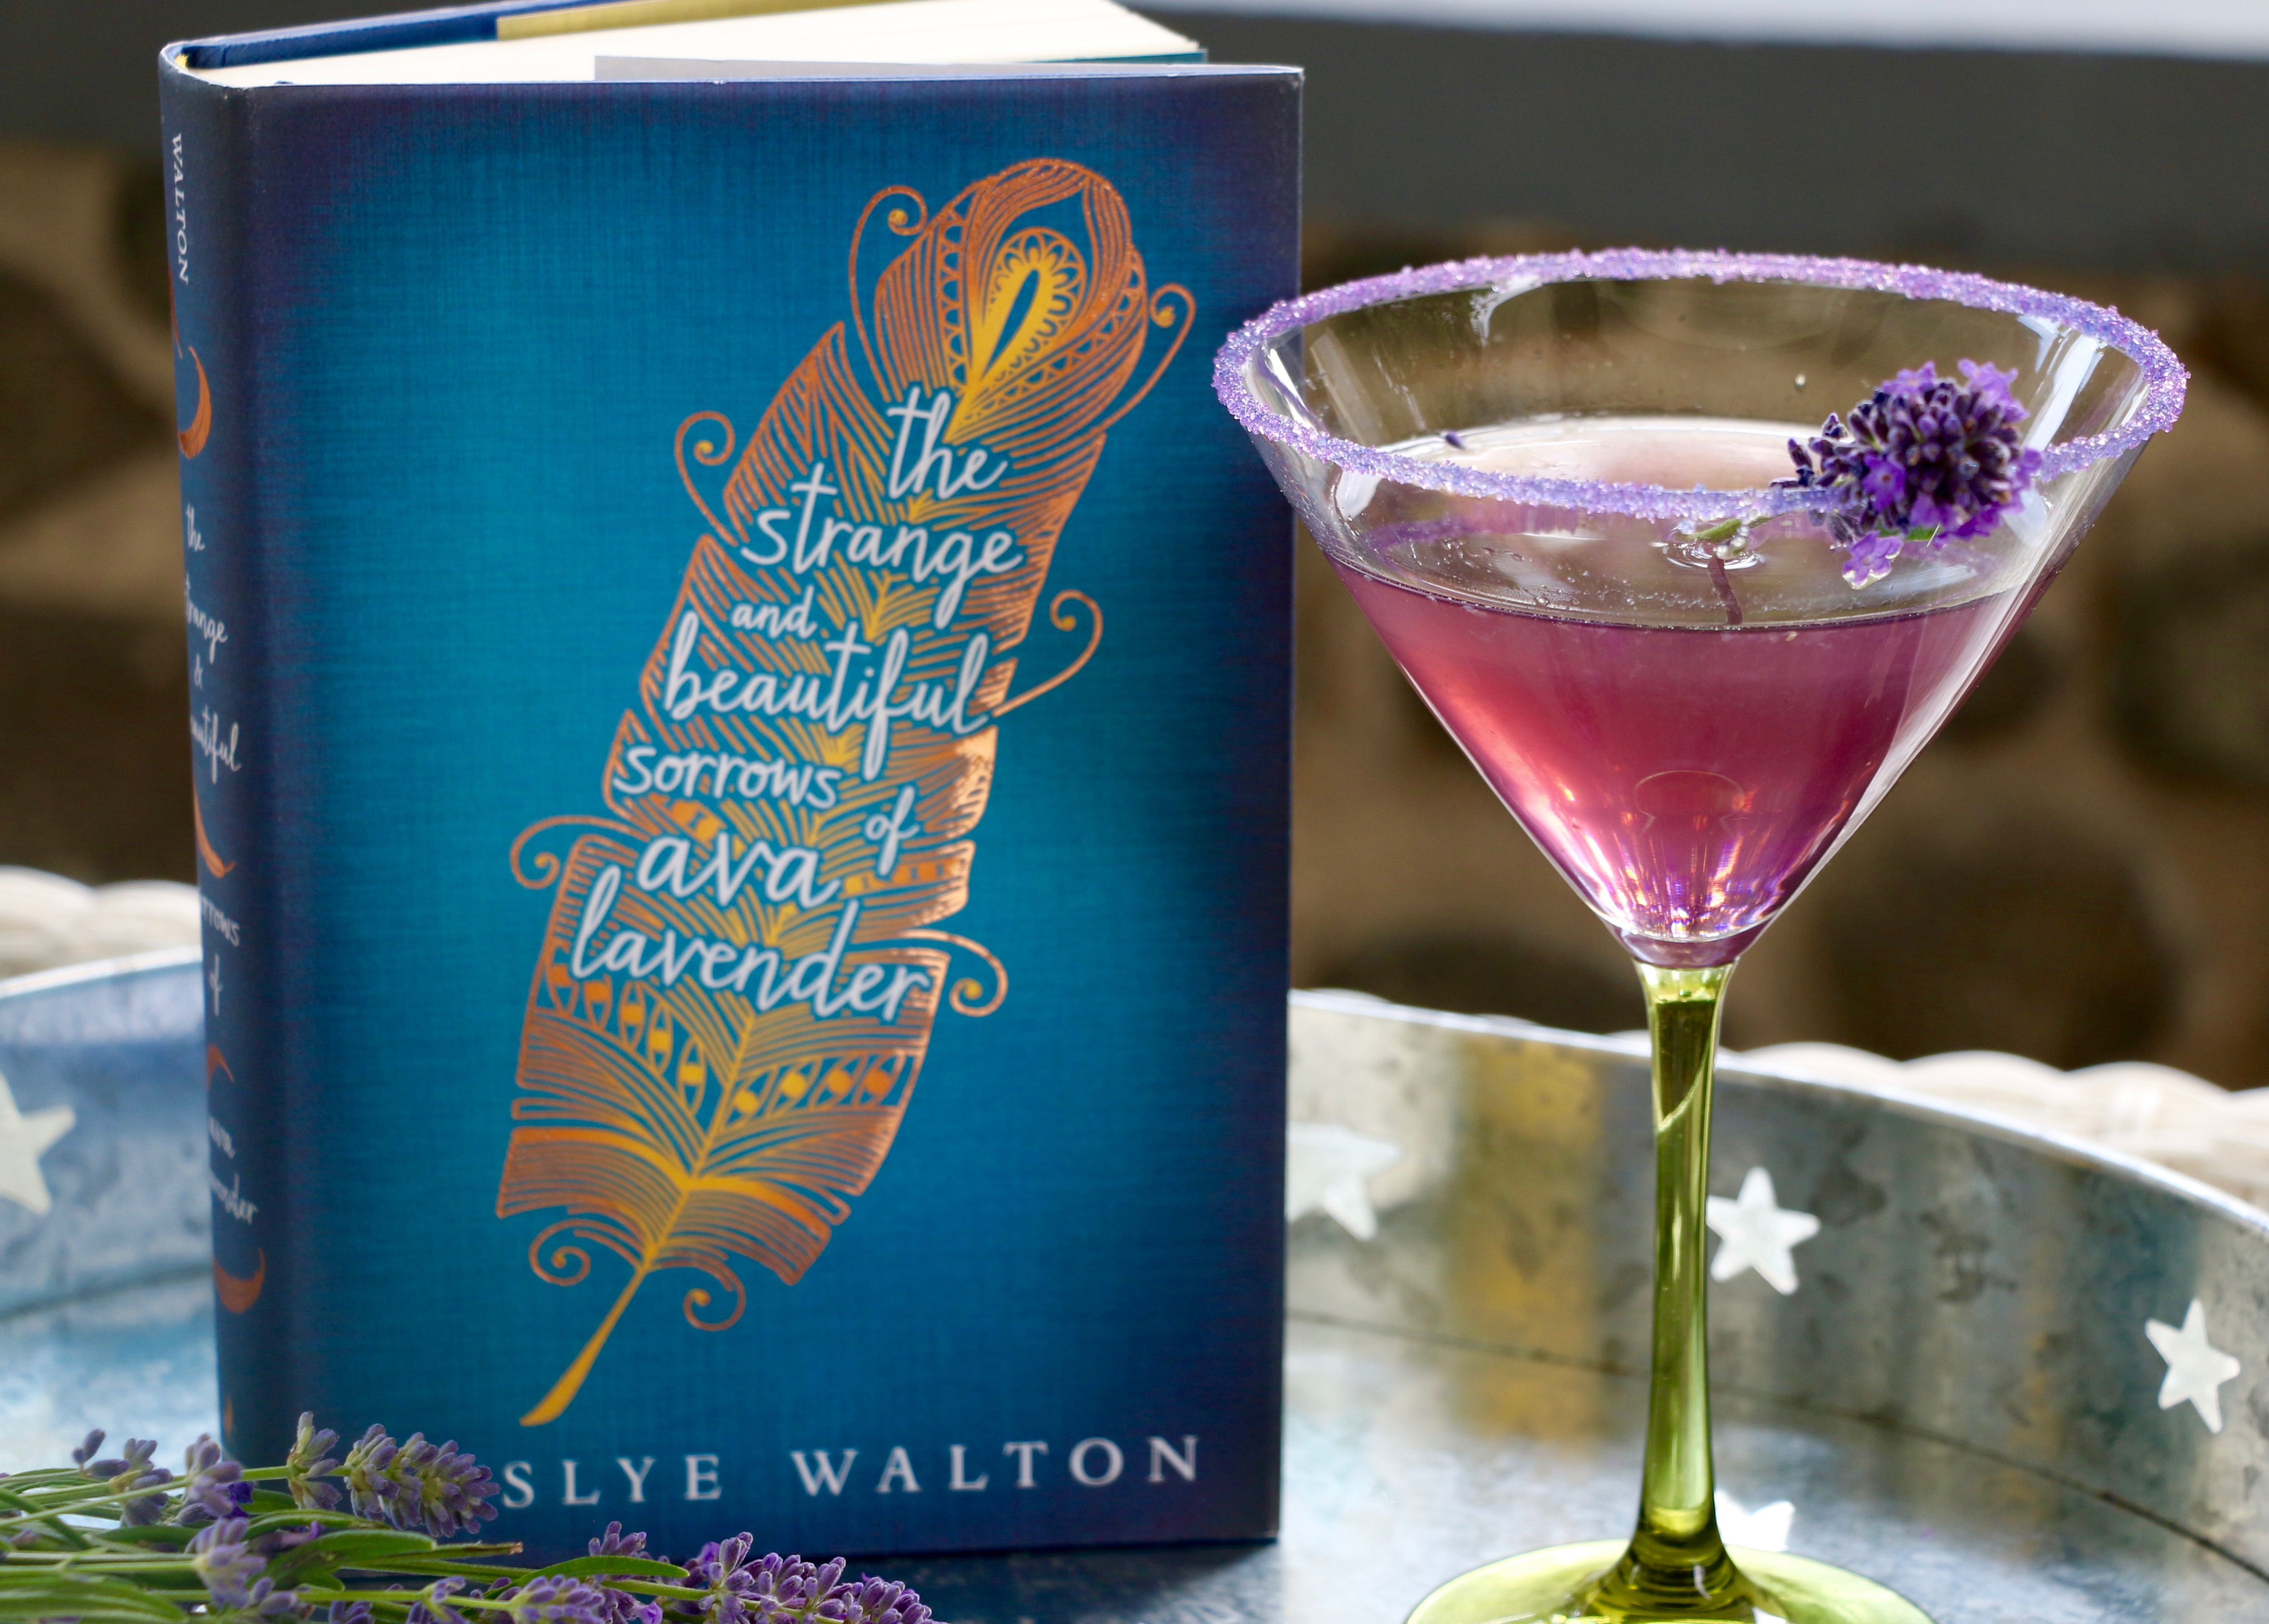 The Strange and Beautiful Sorrows of Ava Lavender and Lavender Martini